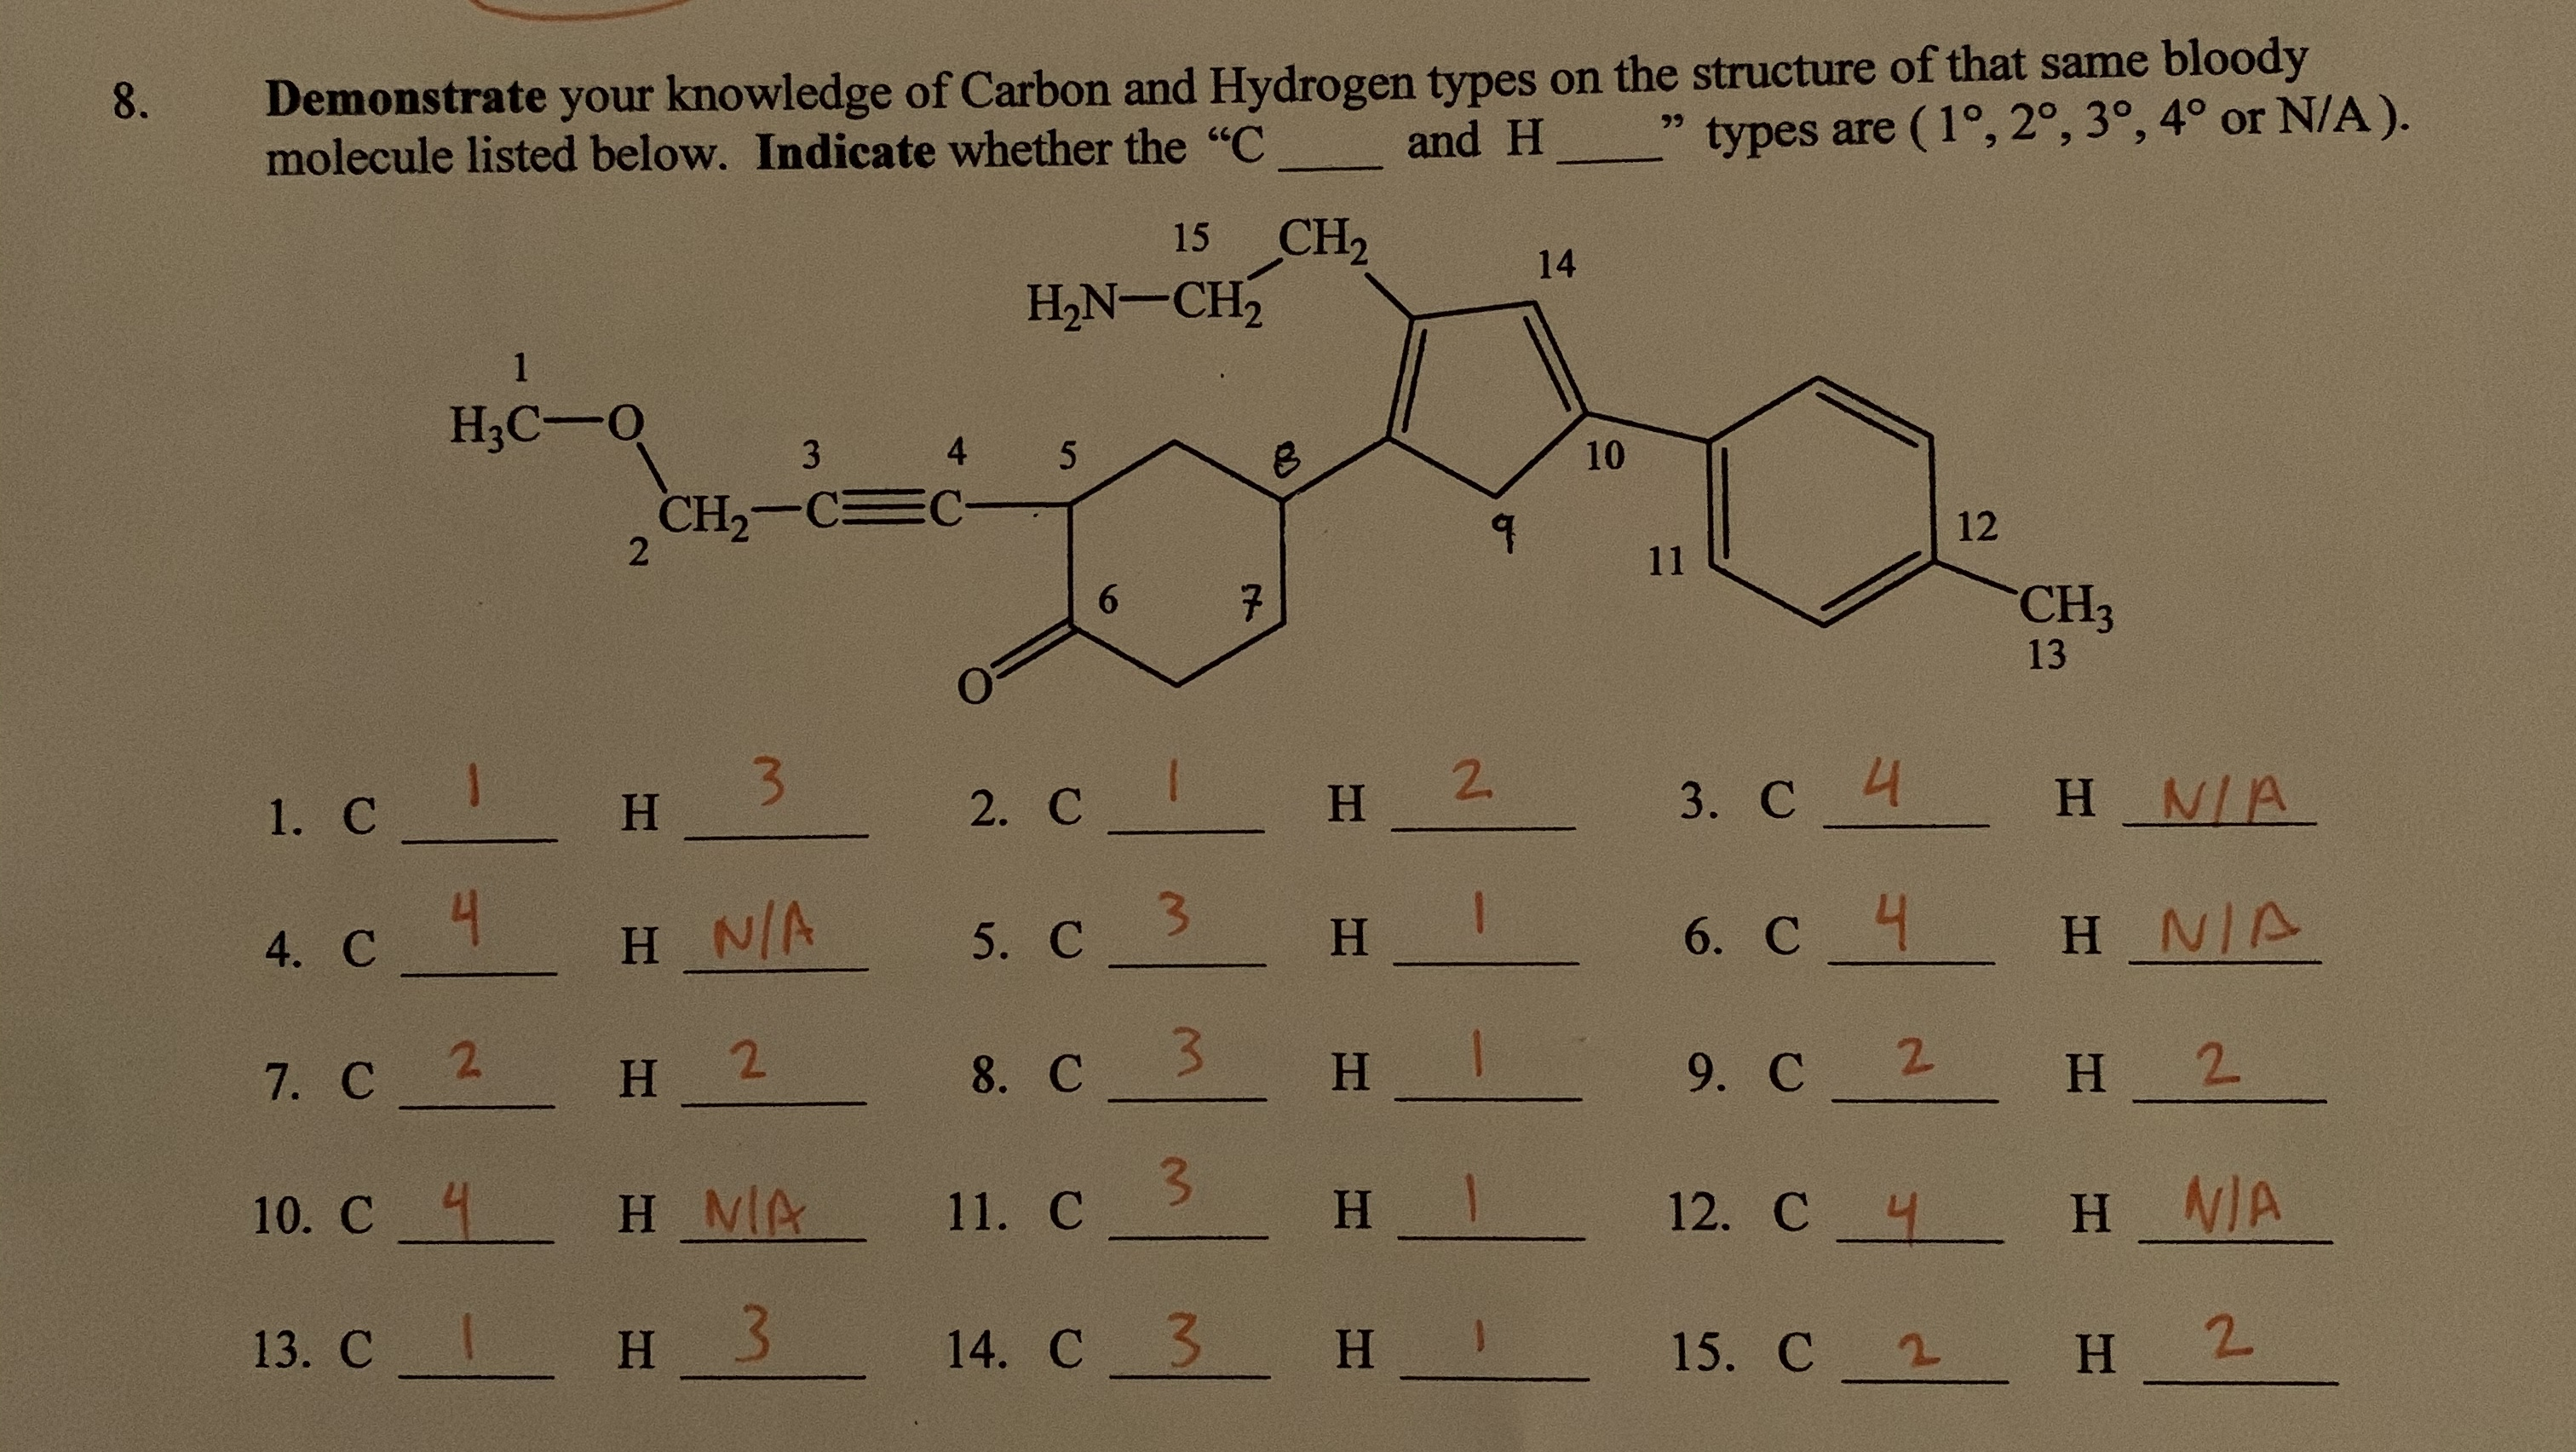 """8 Demonstrate your knowledge of Carbon and Hydrogen types on the structure of that same bloody molecule listed below. Indicate whether the """"C types are (1°, 2°, 3°, 4° or N/A). 99 and H CH2 H2N-CH2 15 14 1 НАС —0 4 3 5 10 CH2-C 2 12 11 6 7 CH3 13 3 H 1. с _ 3. C H N/A 2. C H 2 H_N/A 4. С С 4 5. С H NIA H 6. C 3 2 7. с 2 H 8. C 9. С 2 H H 2 10. C H MA 11. С H H N/A 12. C 13. С I H 3 14. С 3 н_ 15. C H"""